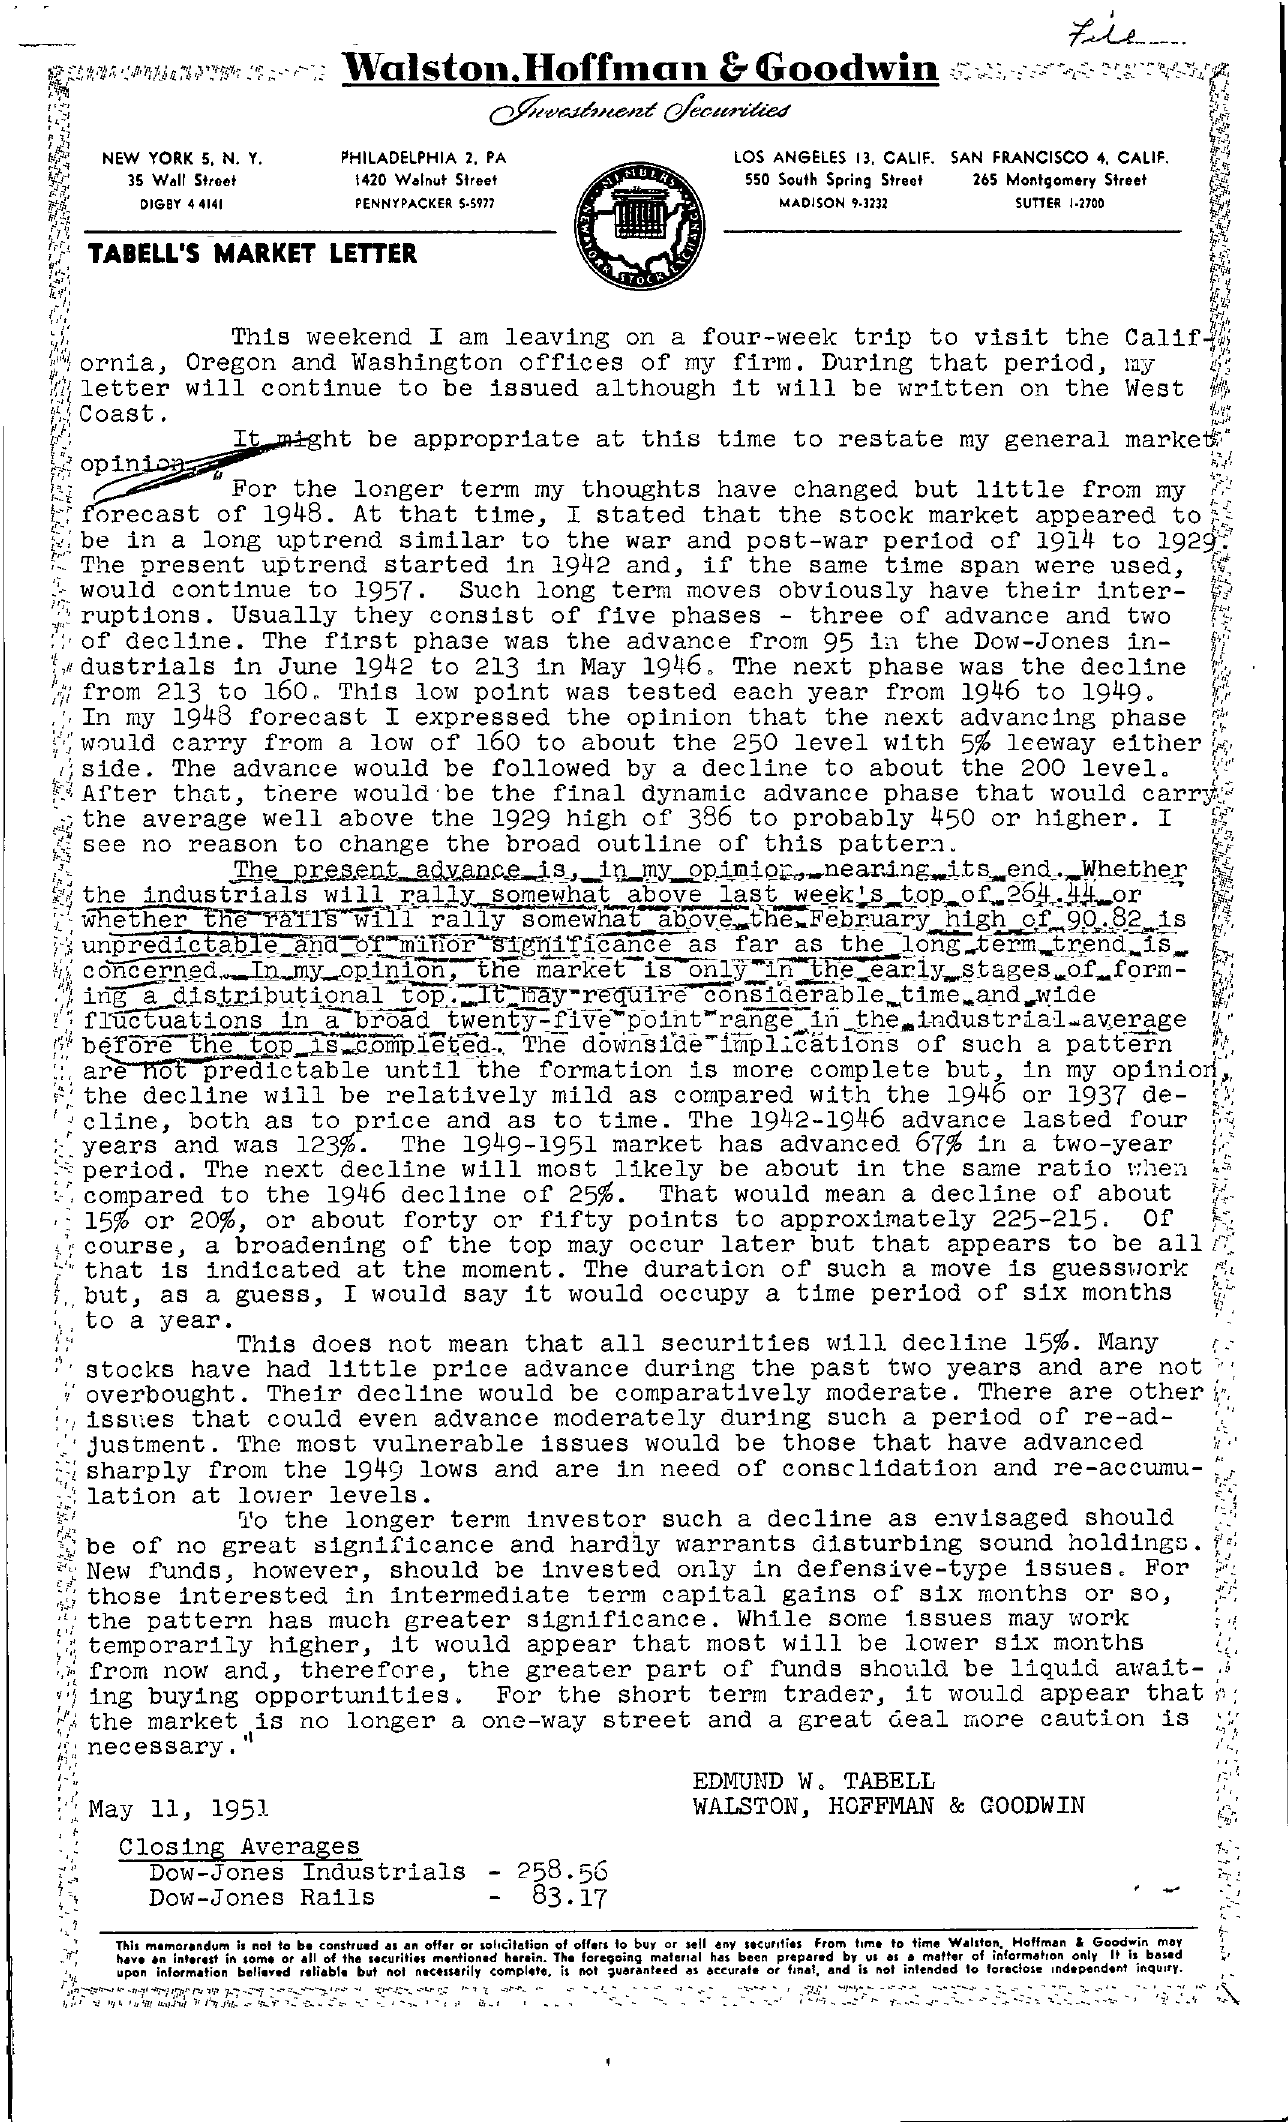 Tabell's Market Letter - May 11, 1951